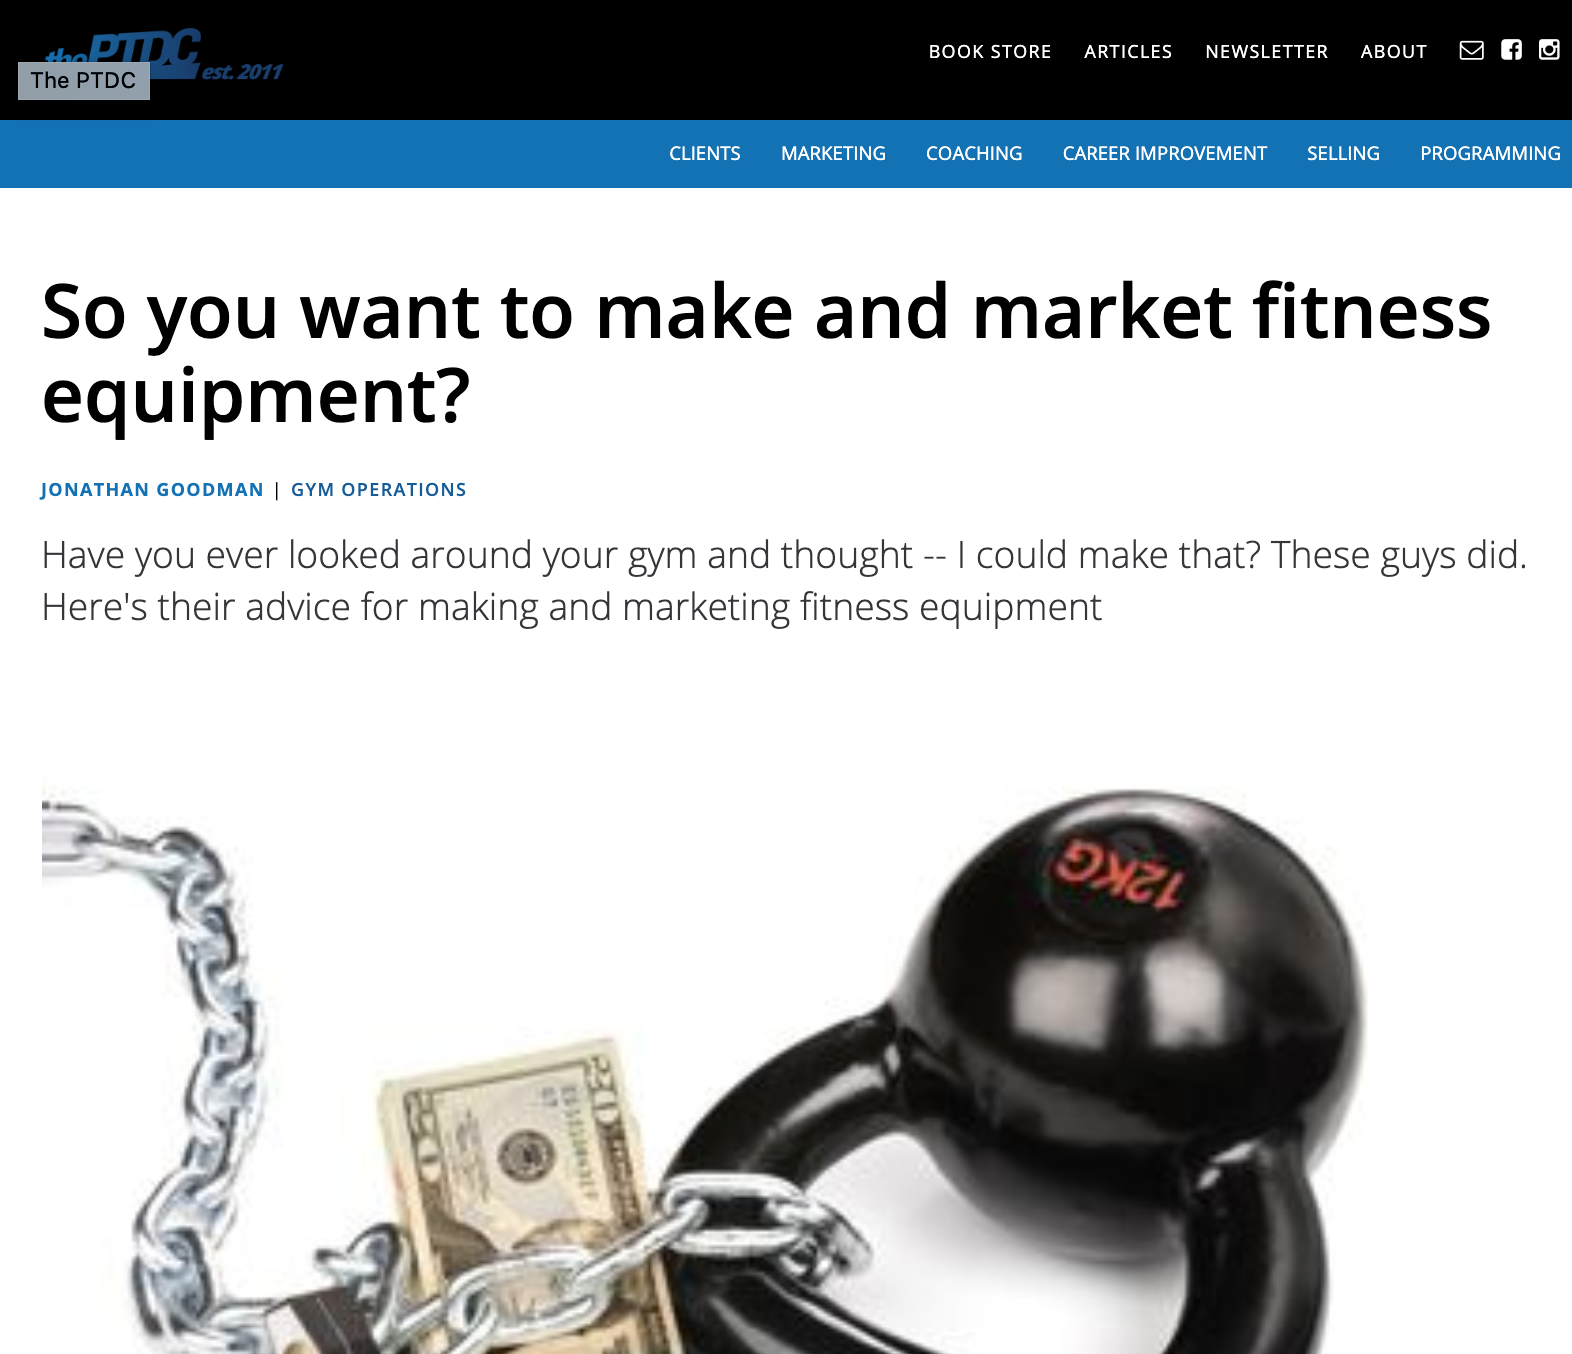 THE PTDC (PERSONAL TRAINING DEVELOPMENT CENTER) BLOG, JANUARY 9, 2012: So you want to make and market fitness equipment?